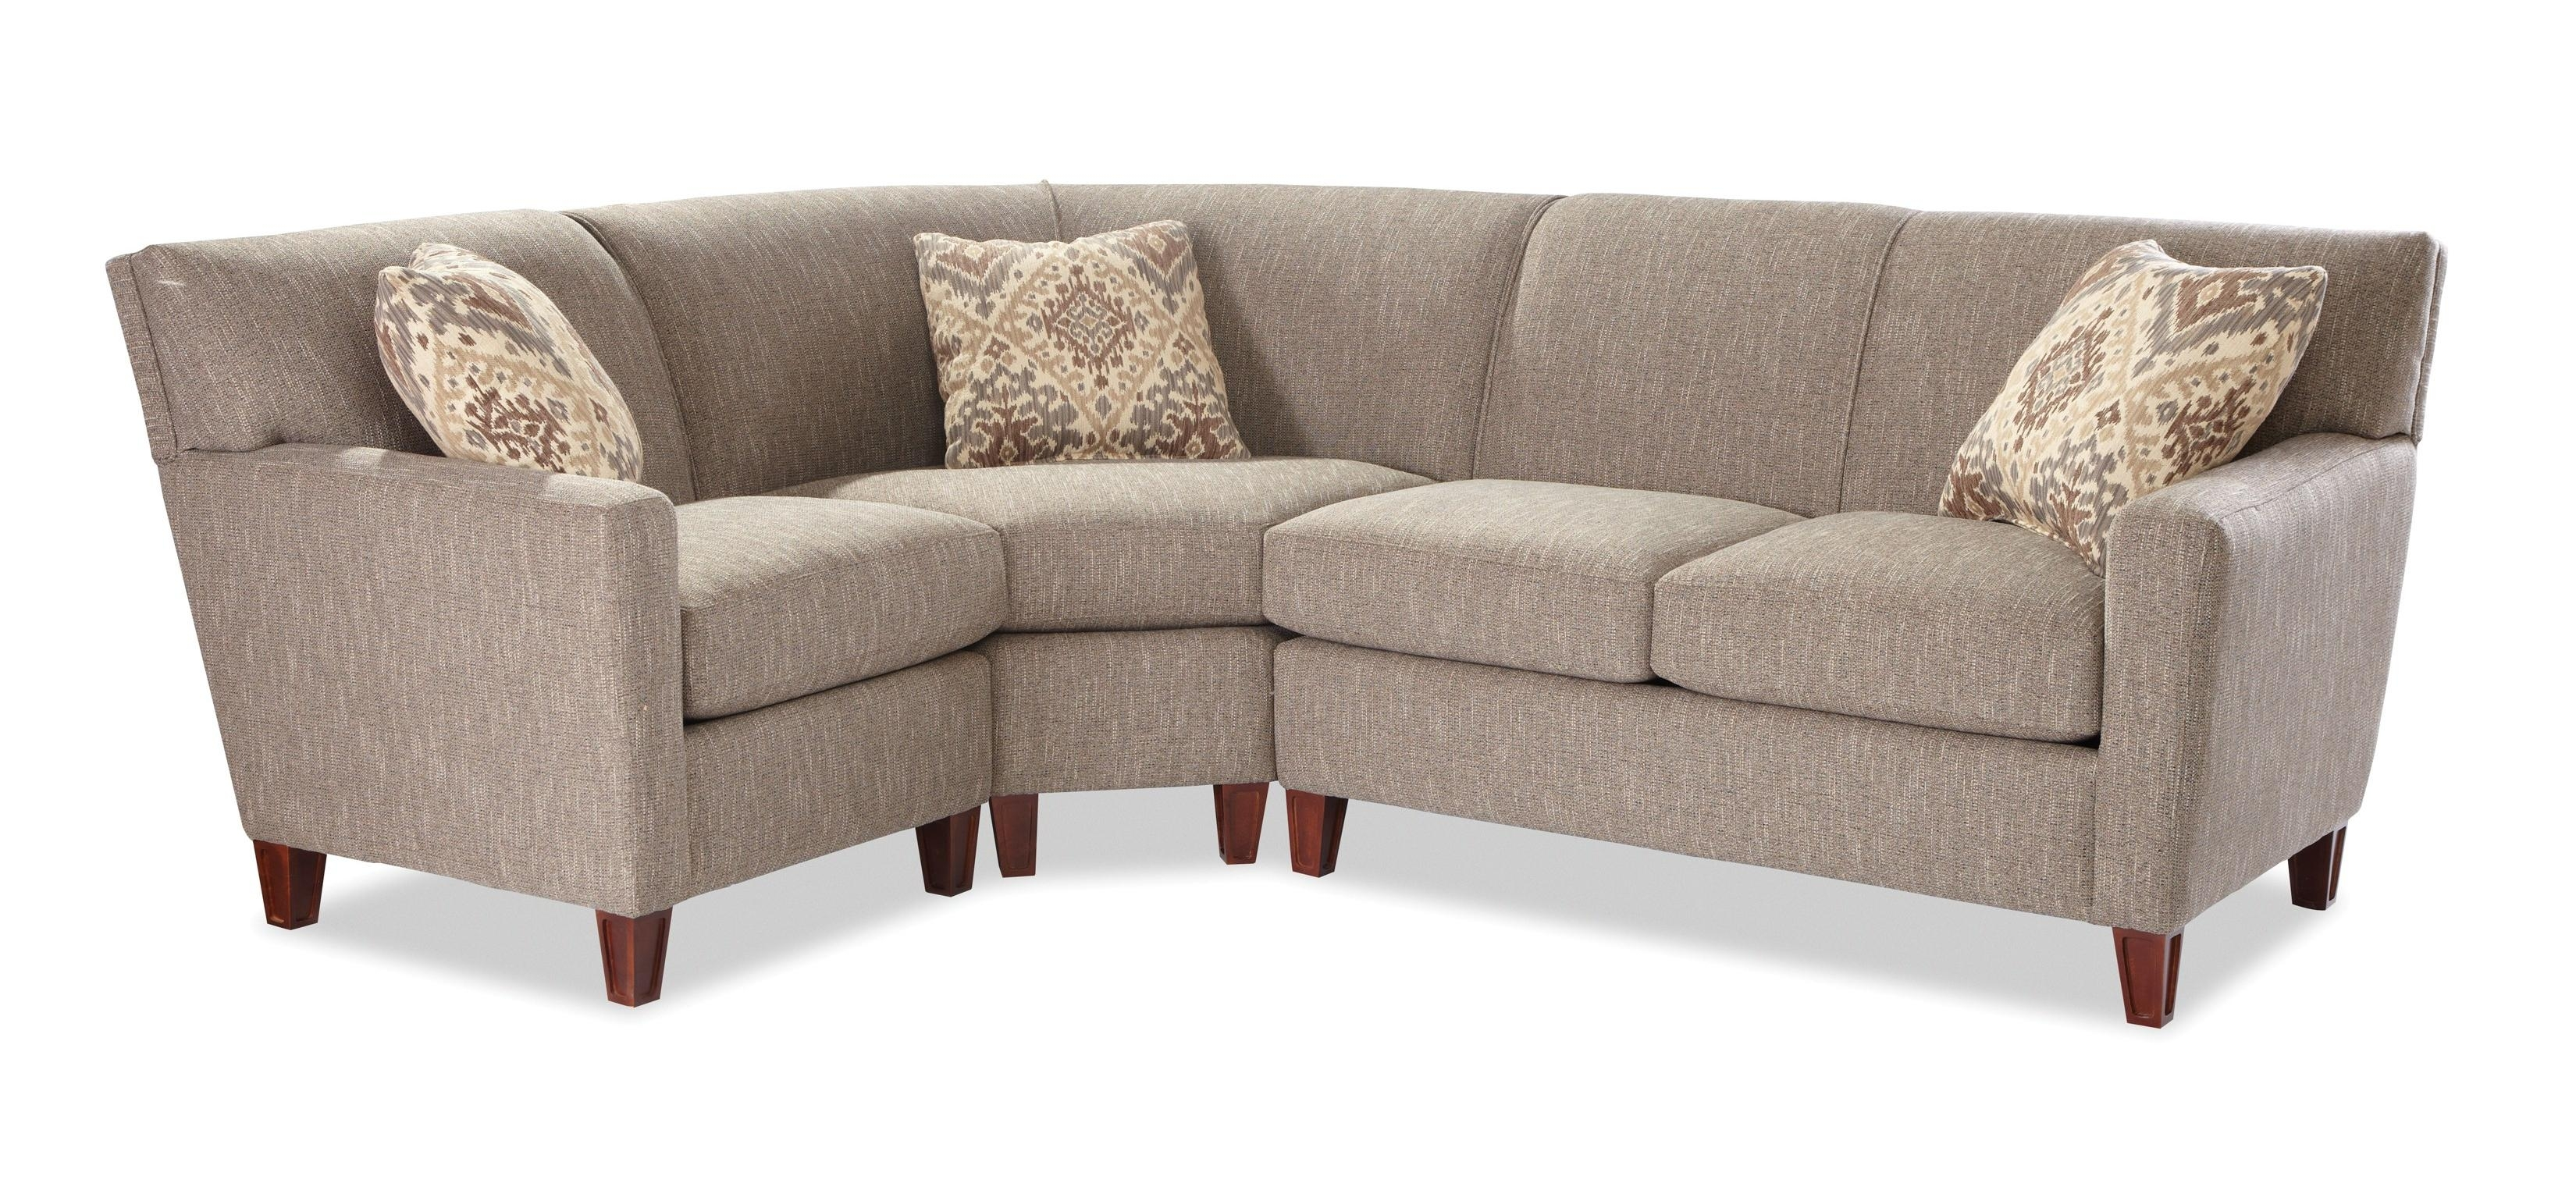 Laf Sofa Raf Loveseat | Baci Living Room With Regard To Turdur 2 Piece Sectionals With Raf Loveseat (View 4 of 25)